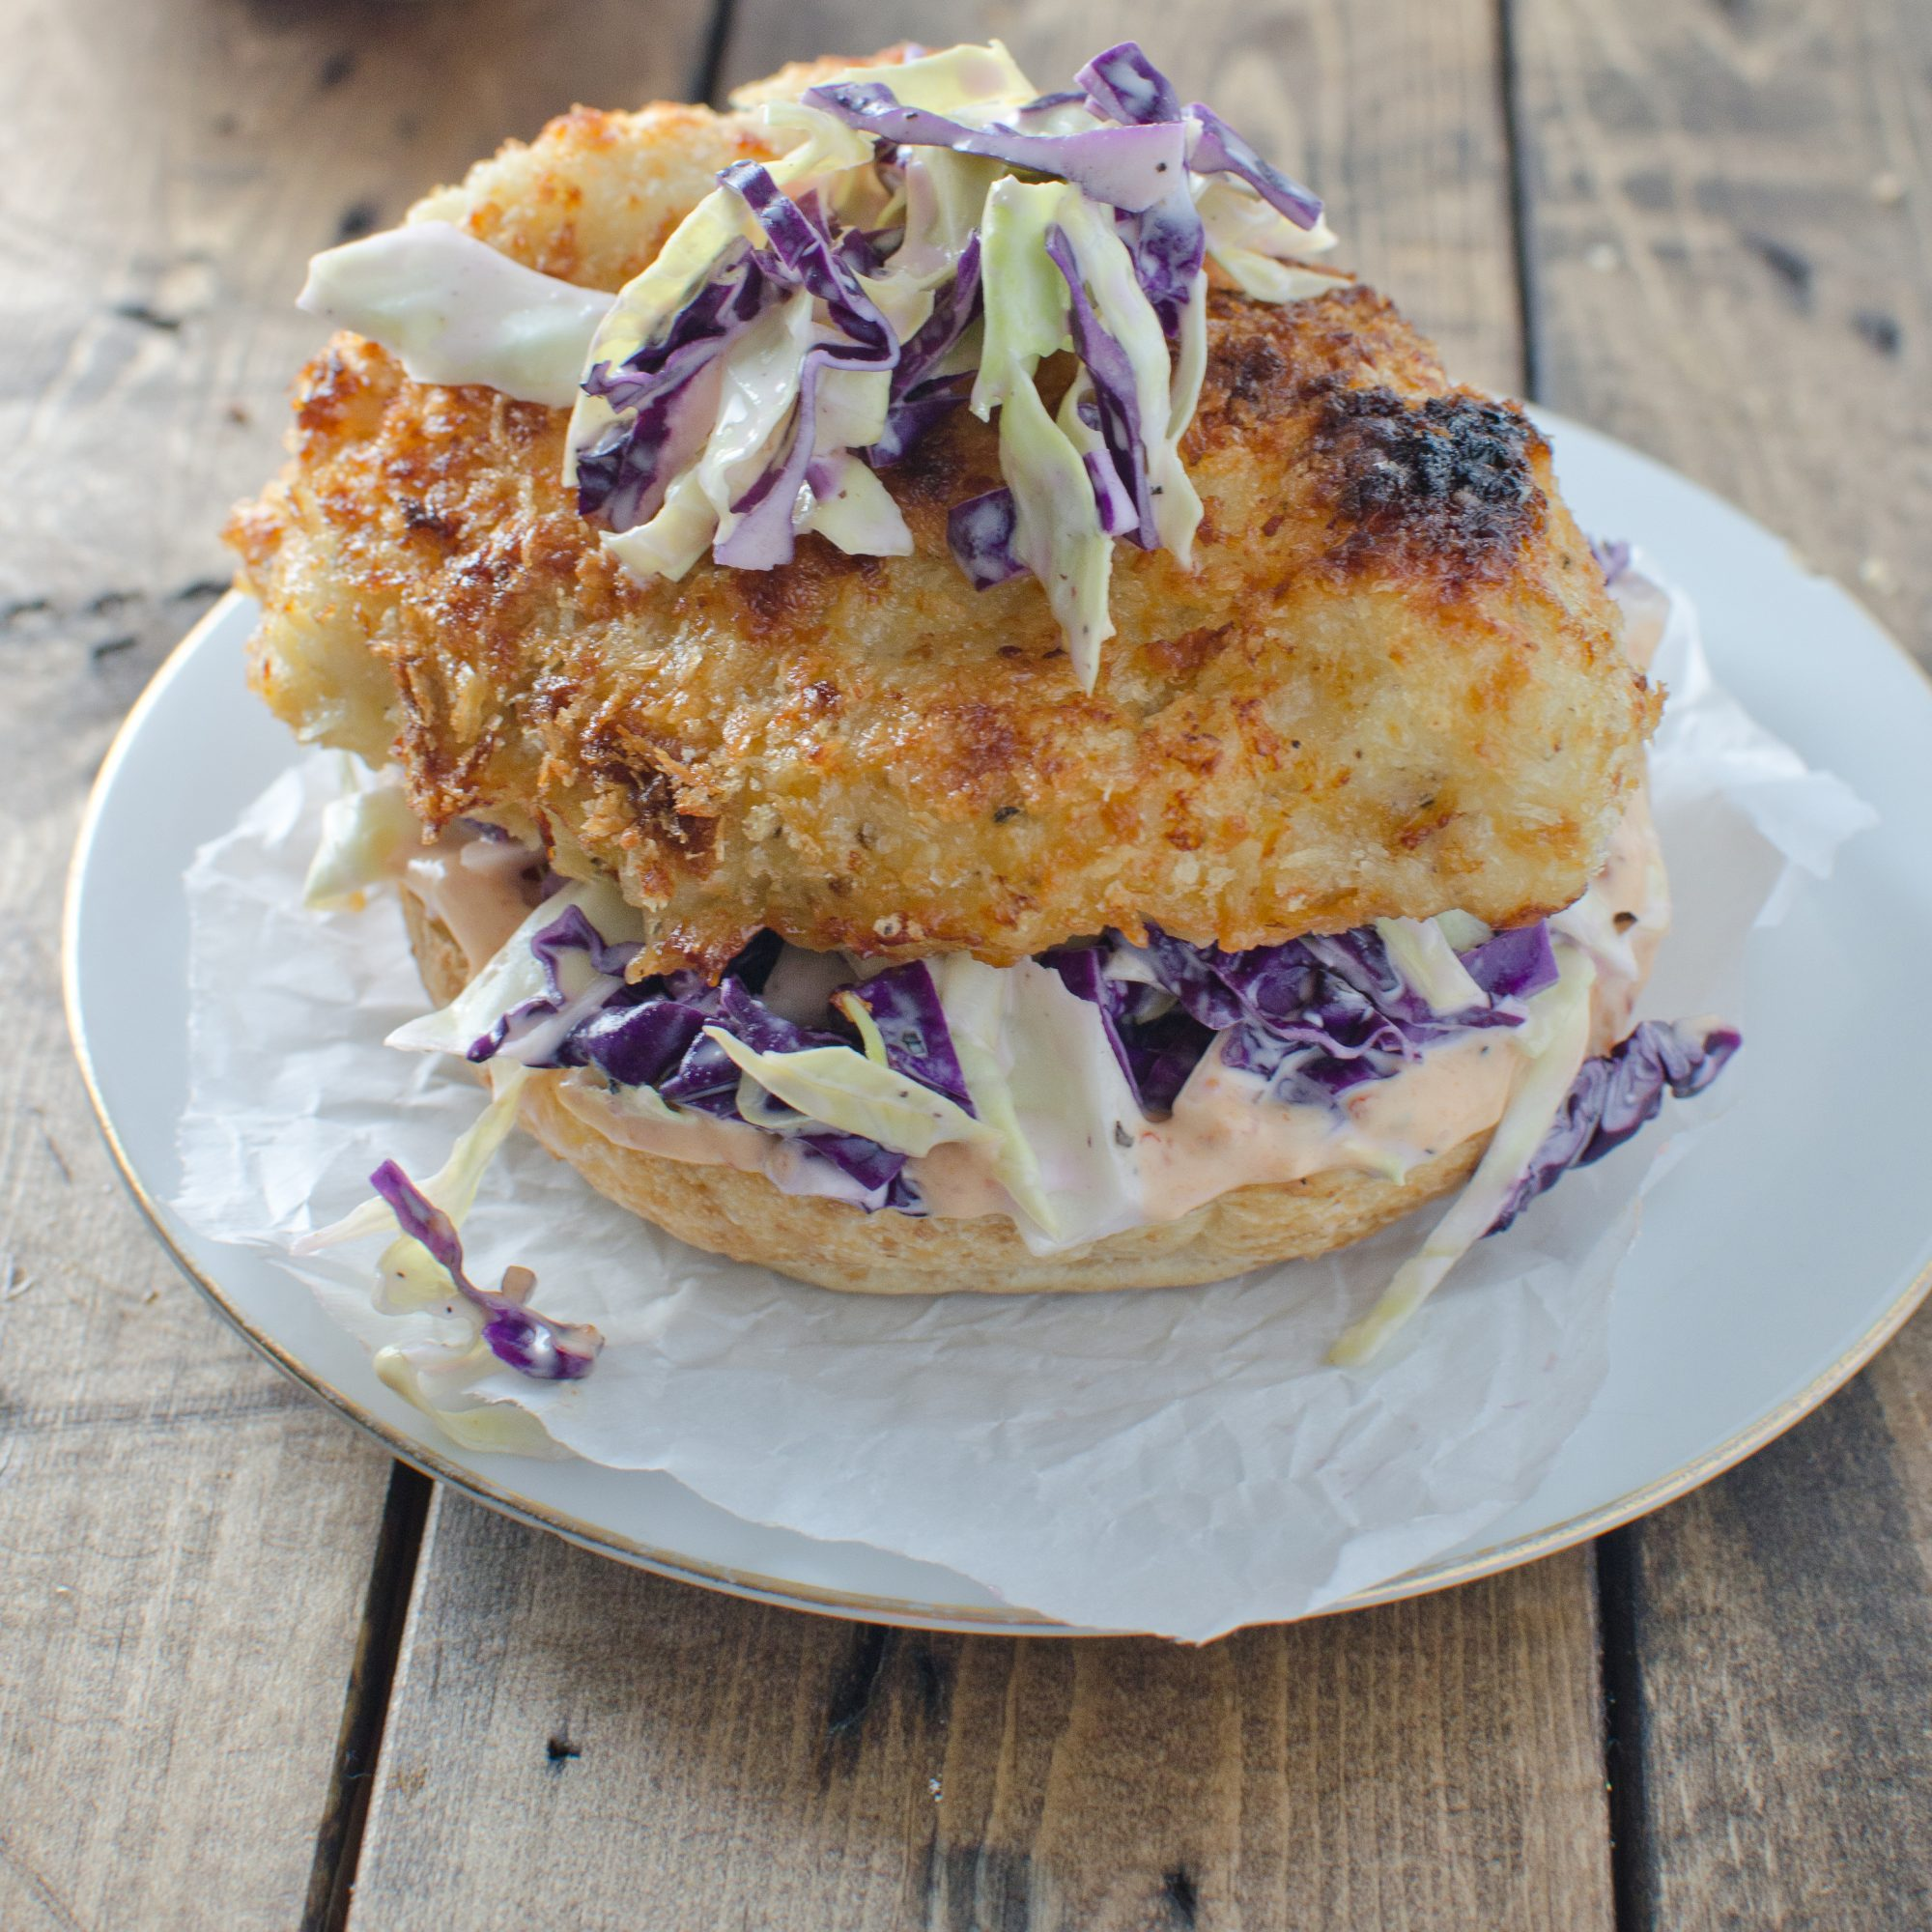 Crispy Chicken Burger with Coleslaw and Chipotle Mayo